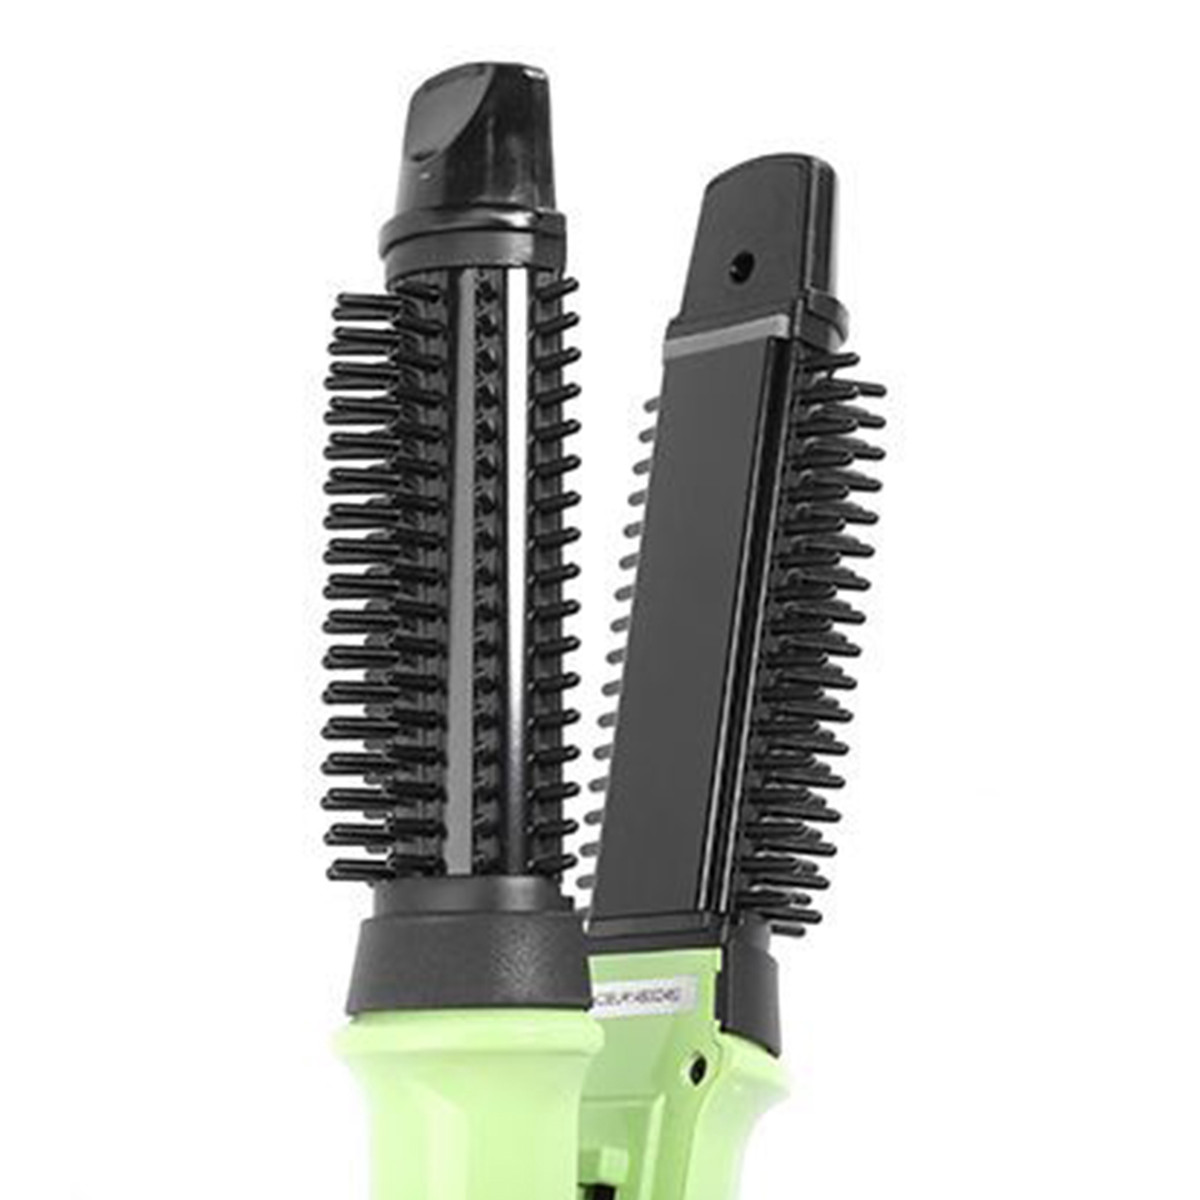 Nick's Easy Styling Tool